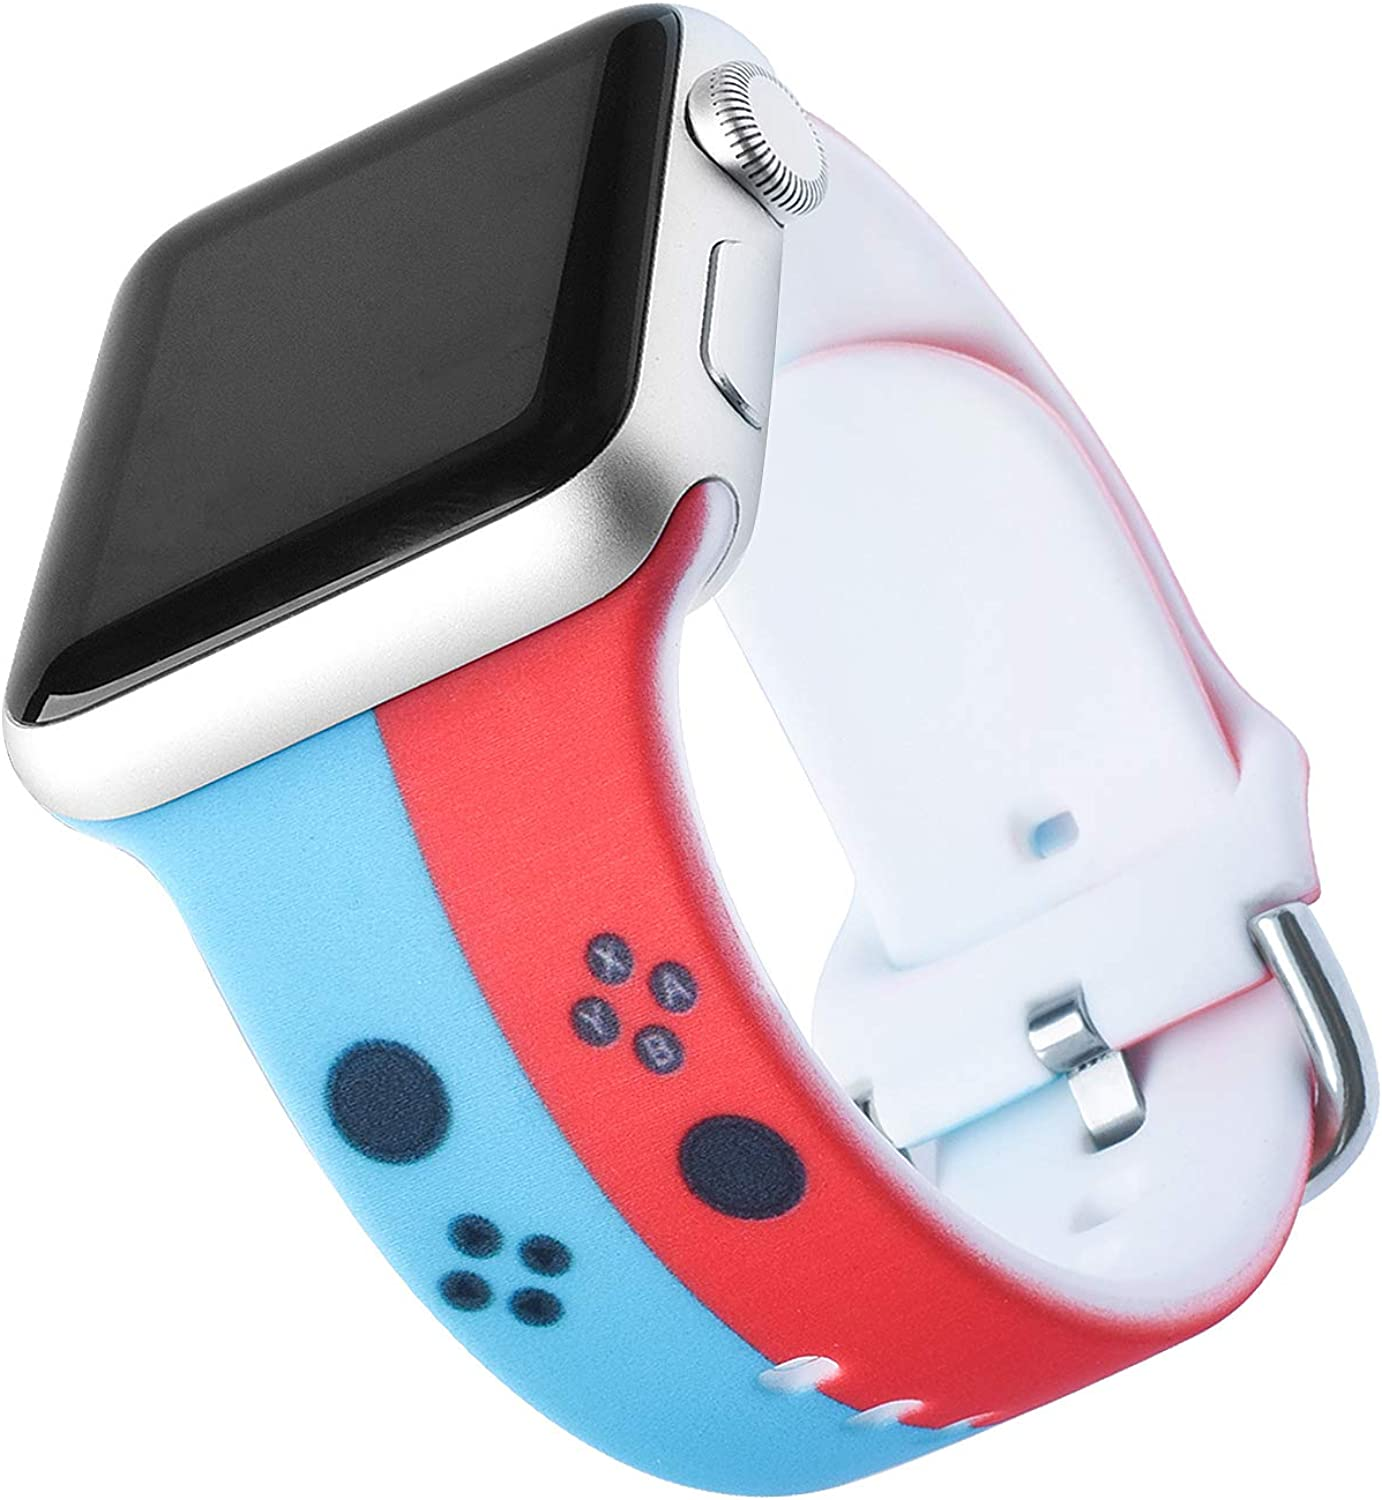 Cute Cartoon Character Switch Compatible with Apple Watch Band 38mm 40mm 42mm 44mm, Game Switch Strap with Soft Band Wristband for Kids Boys Girls Women Wen iWatch SE Series 6/5/4/3/2/1